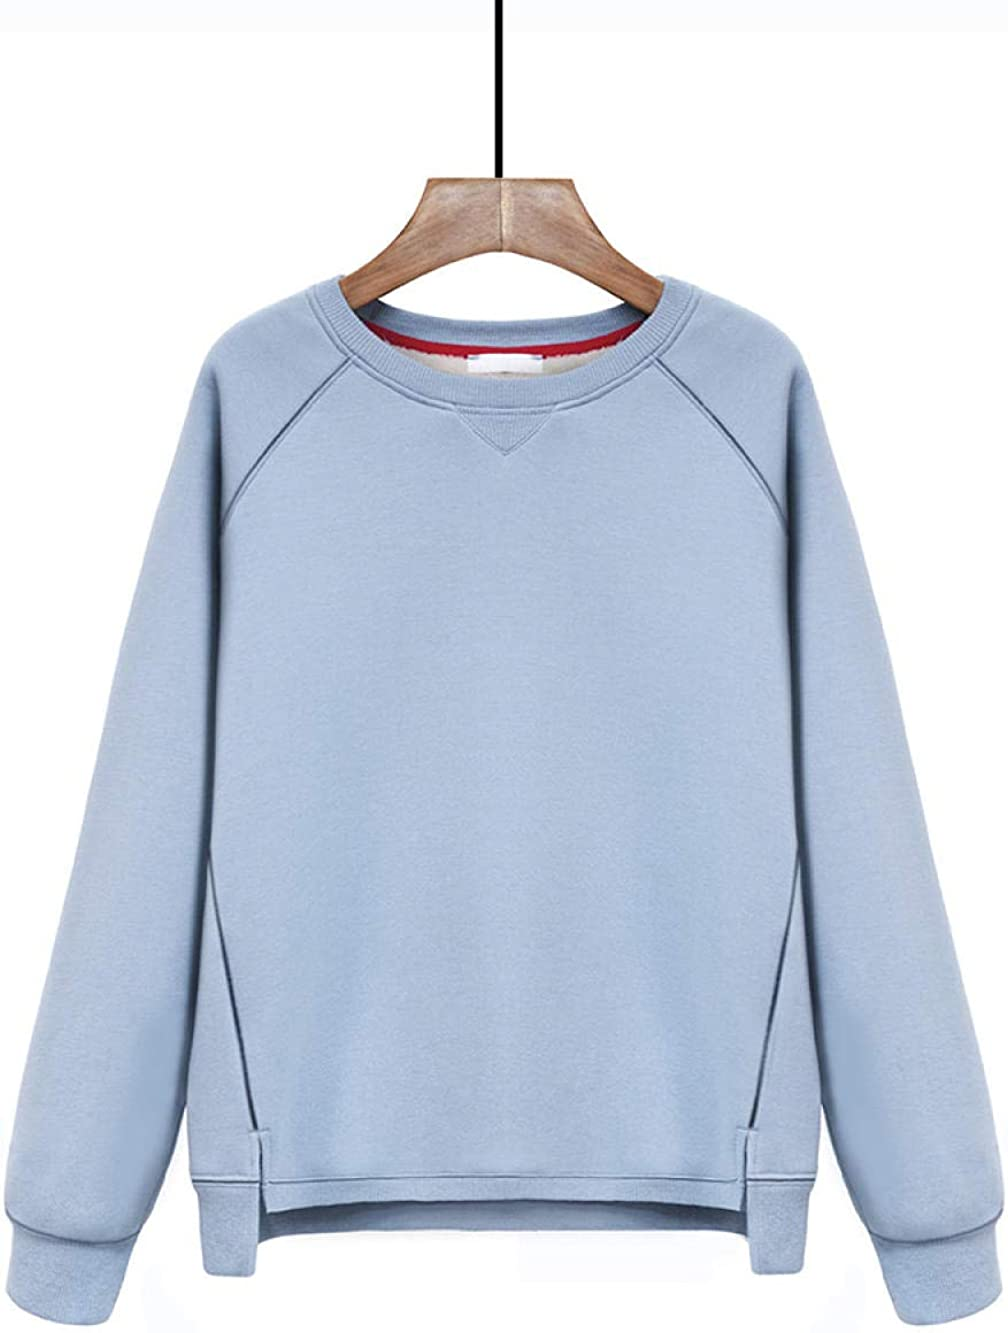 Blau S xiami Lamb Sweater Sweater Damen Herbst Winter Sweatshirt New Plus samtgepolsterter, lockerer Rundhalspul r, kappenloser Lammfellmantel